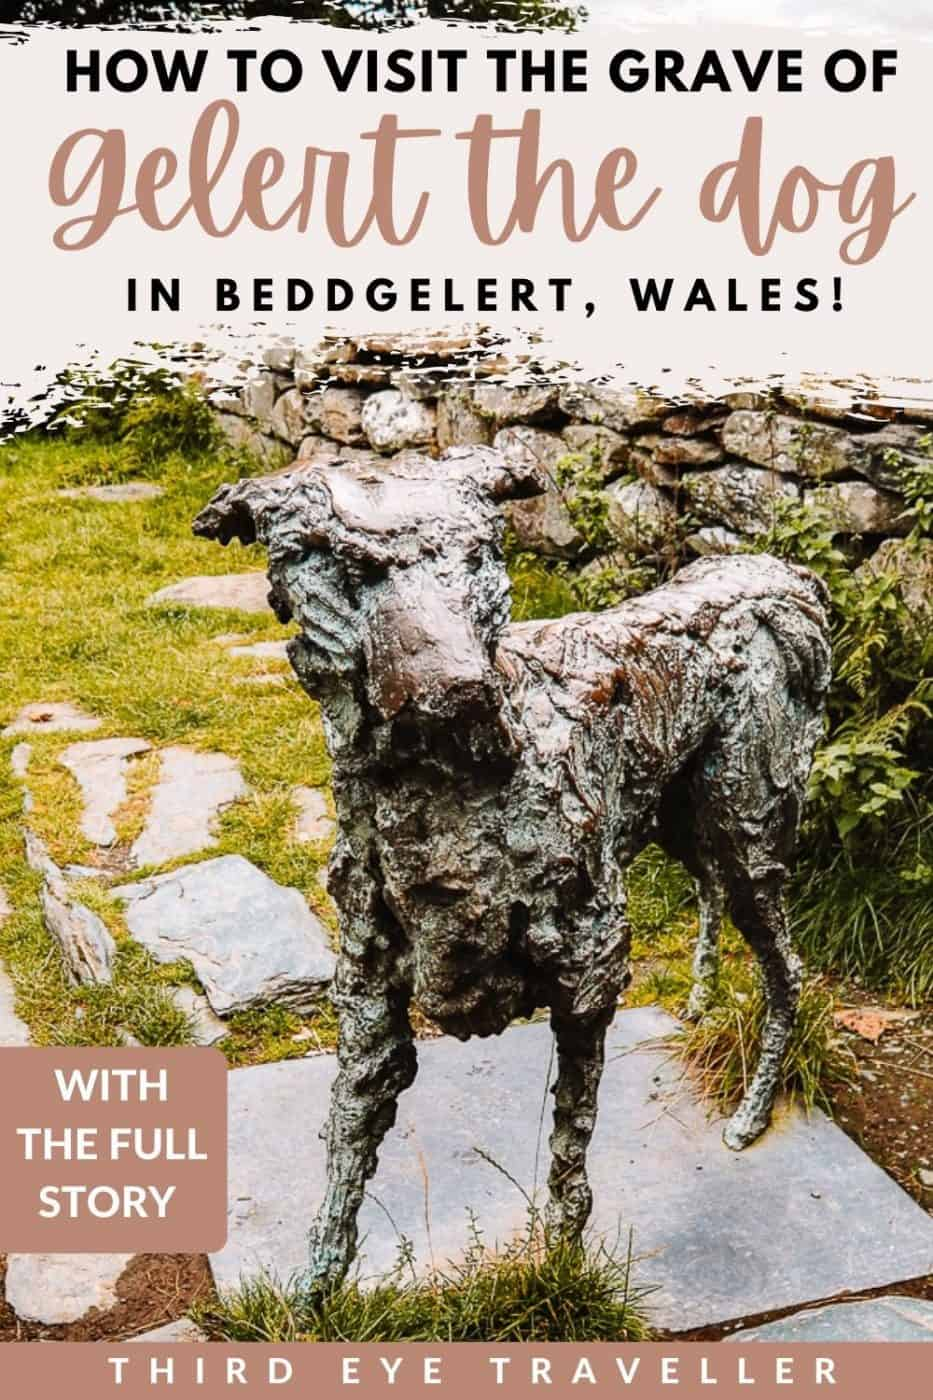 The legend of Gelert the Dog & Gelert's Grave in Wales